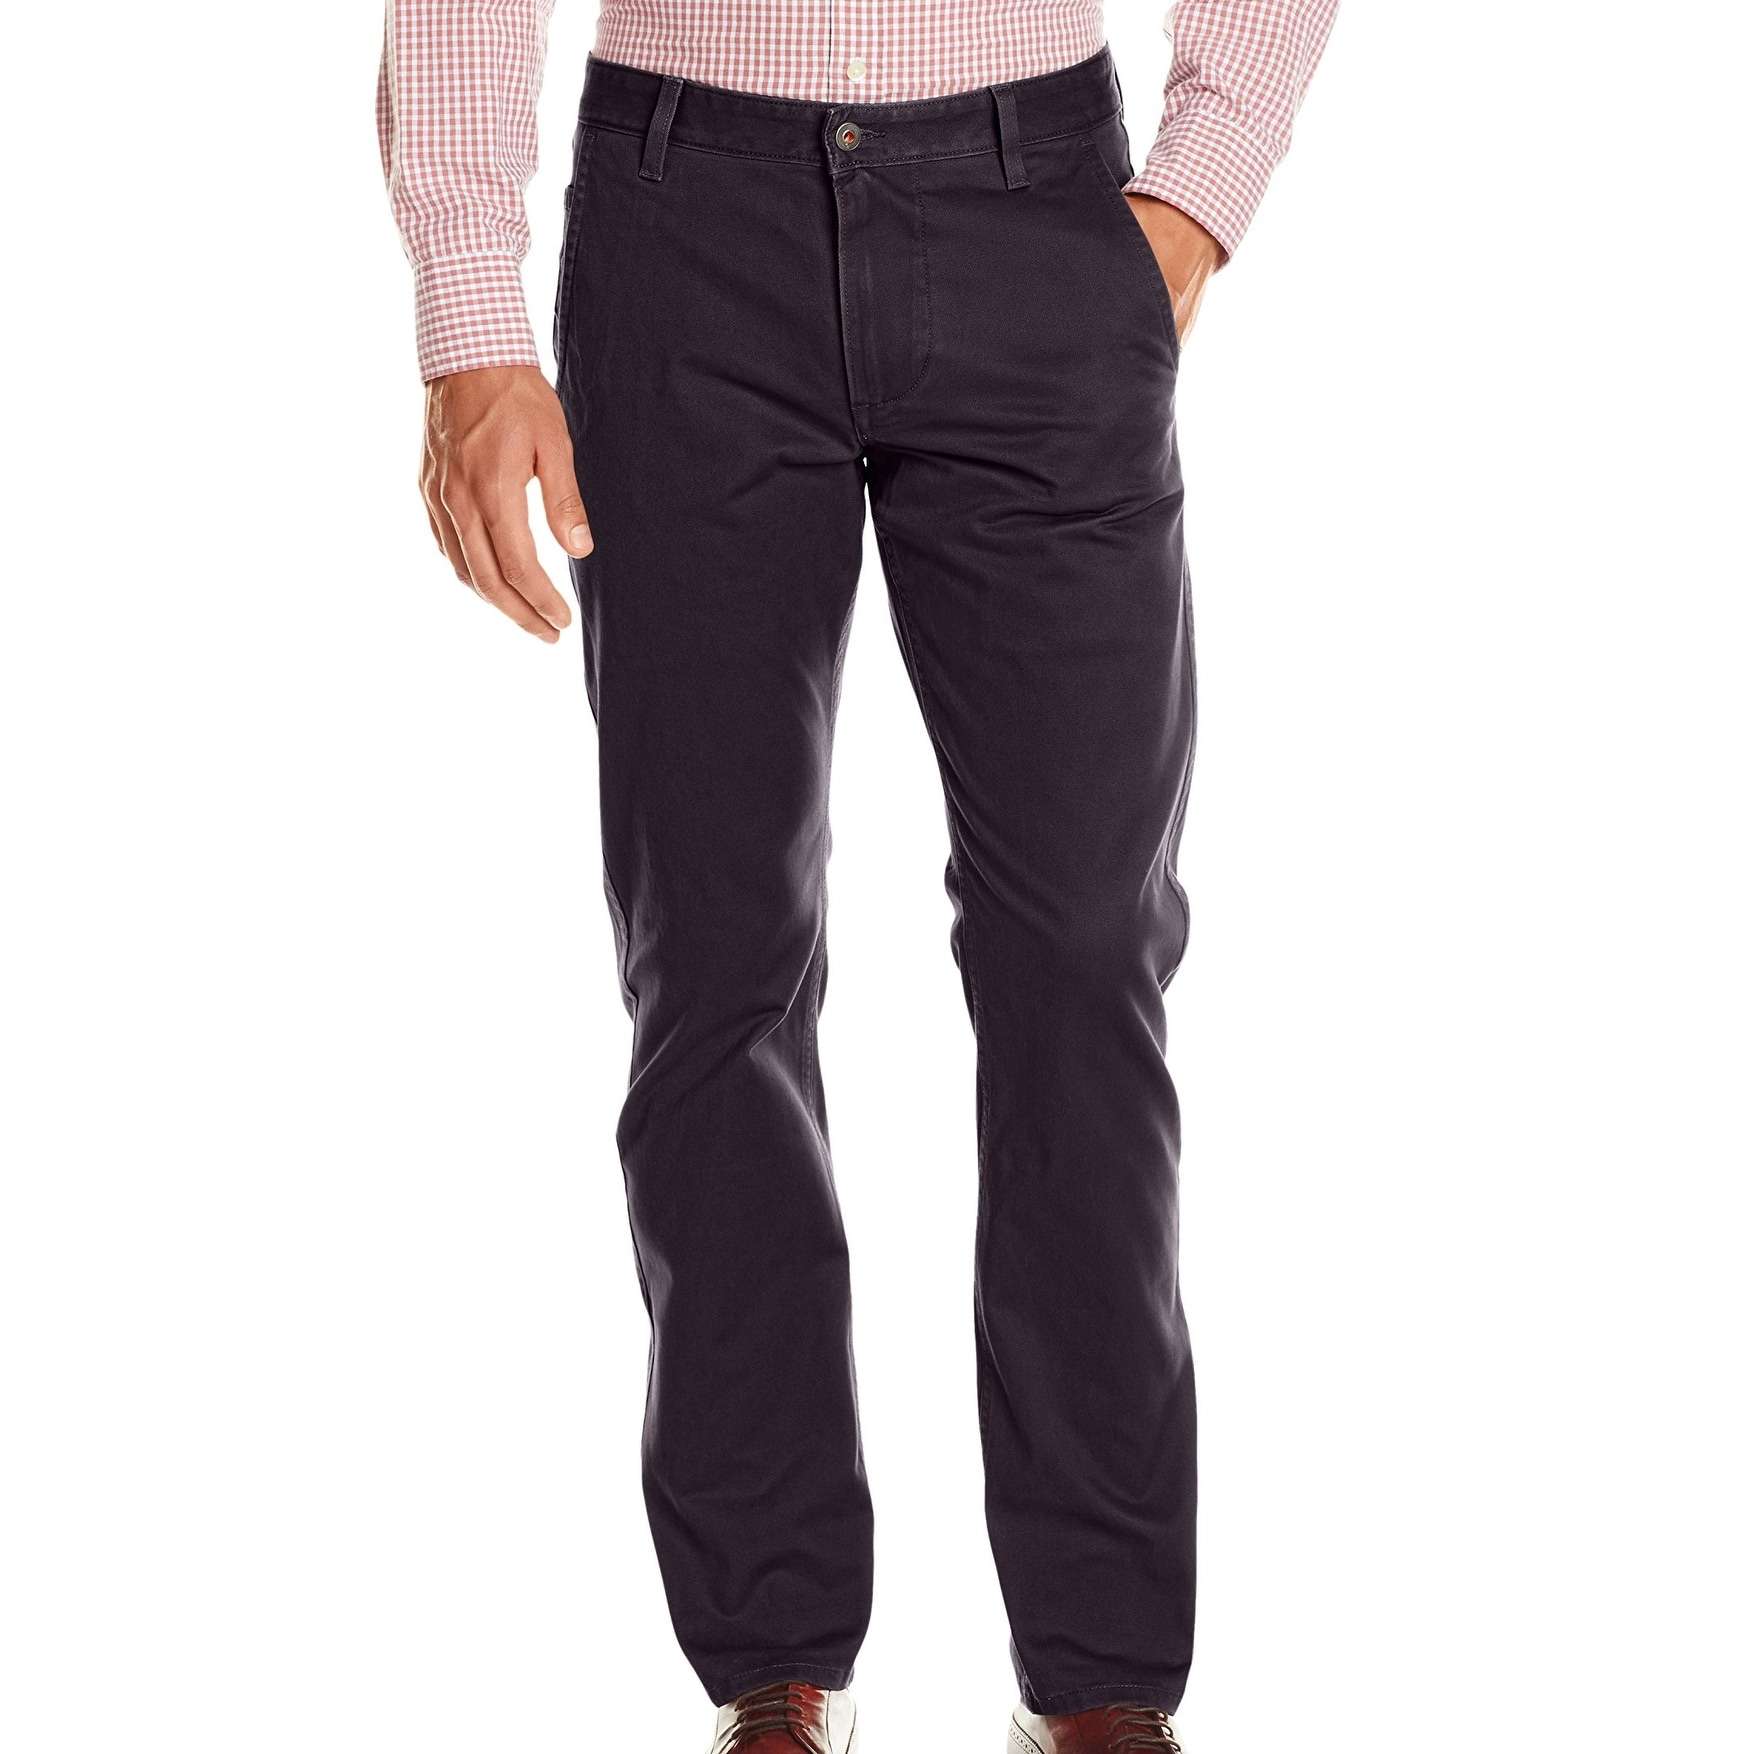 5c432fa7b Black Tapered Dress Pants Mens – DACC